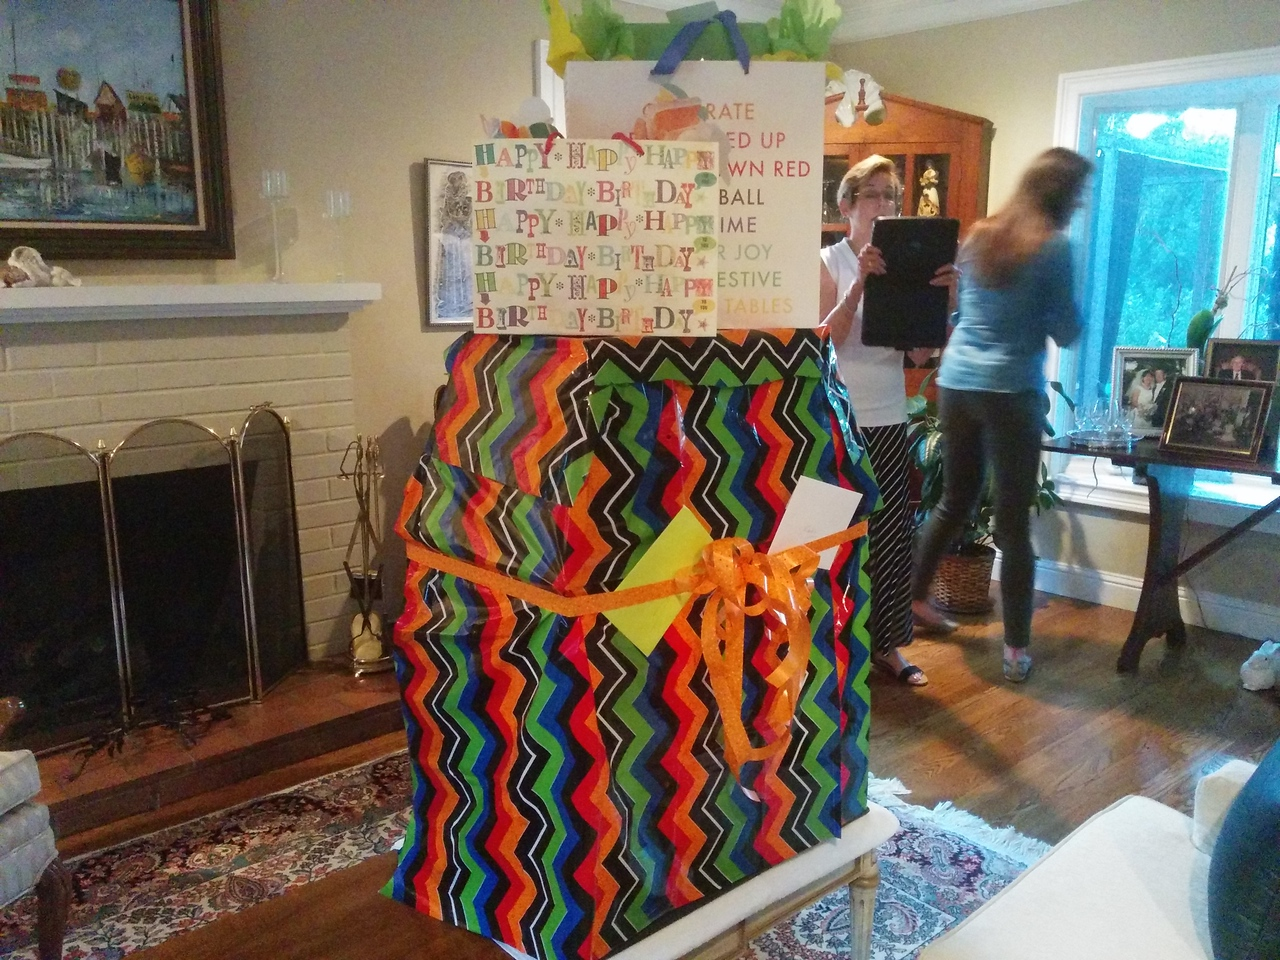 Holy smokes a tower of presents!